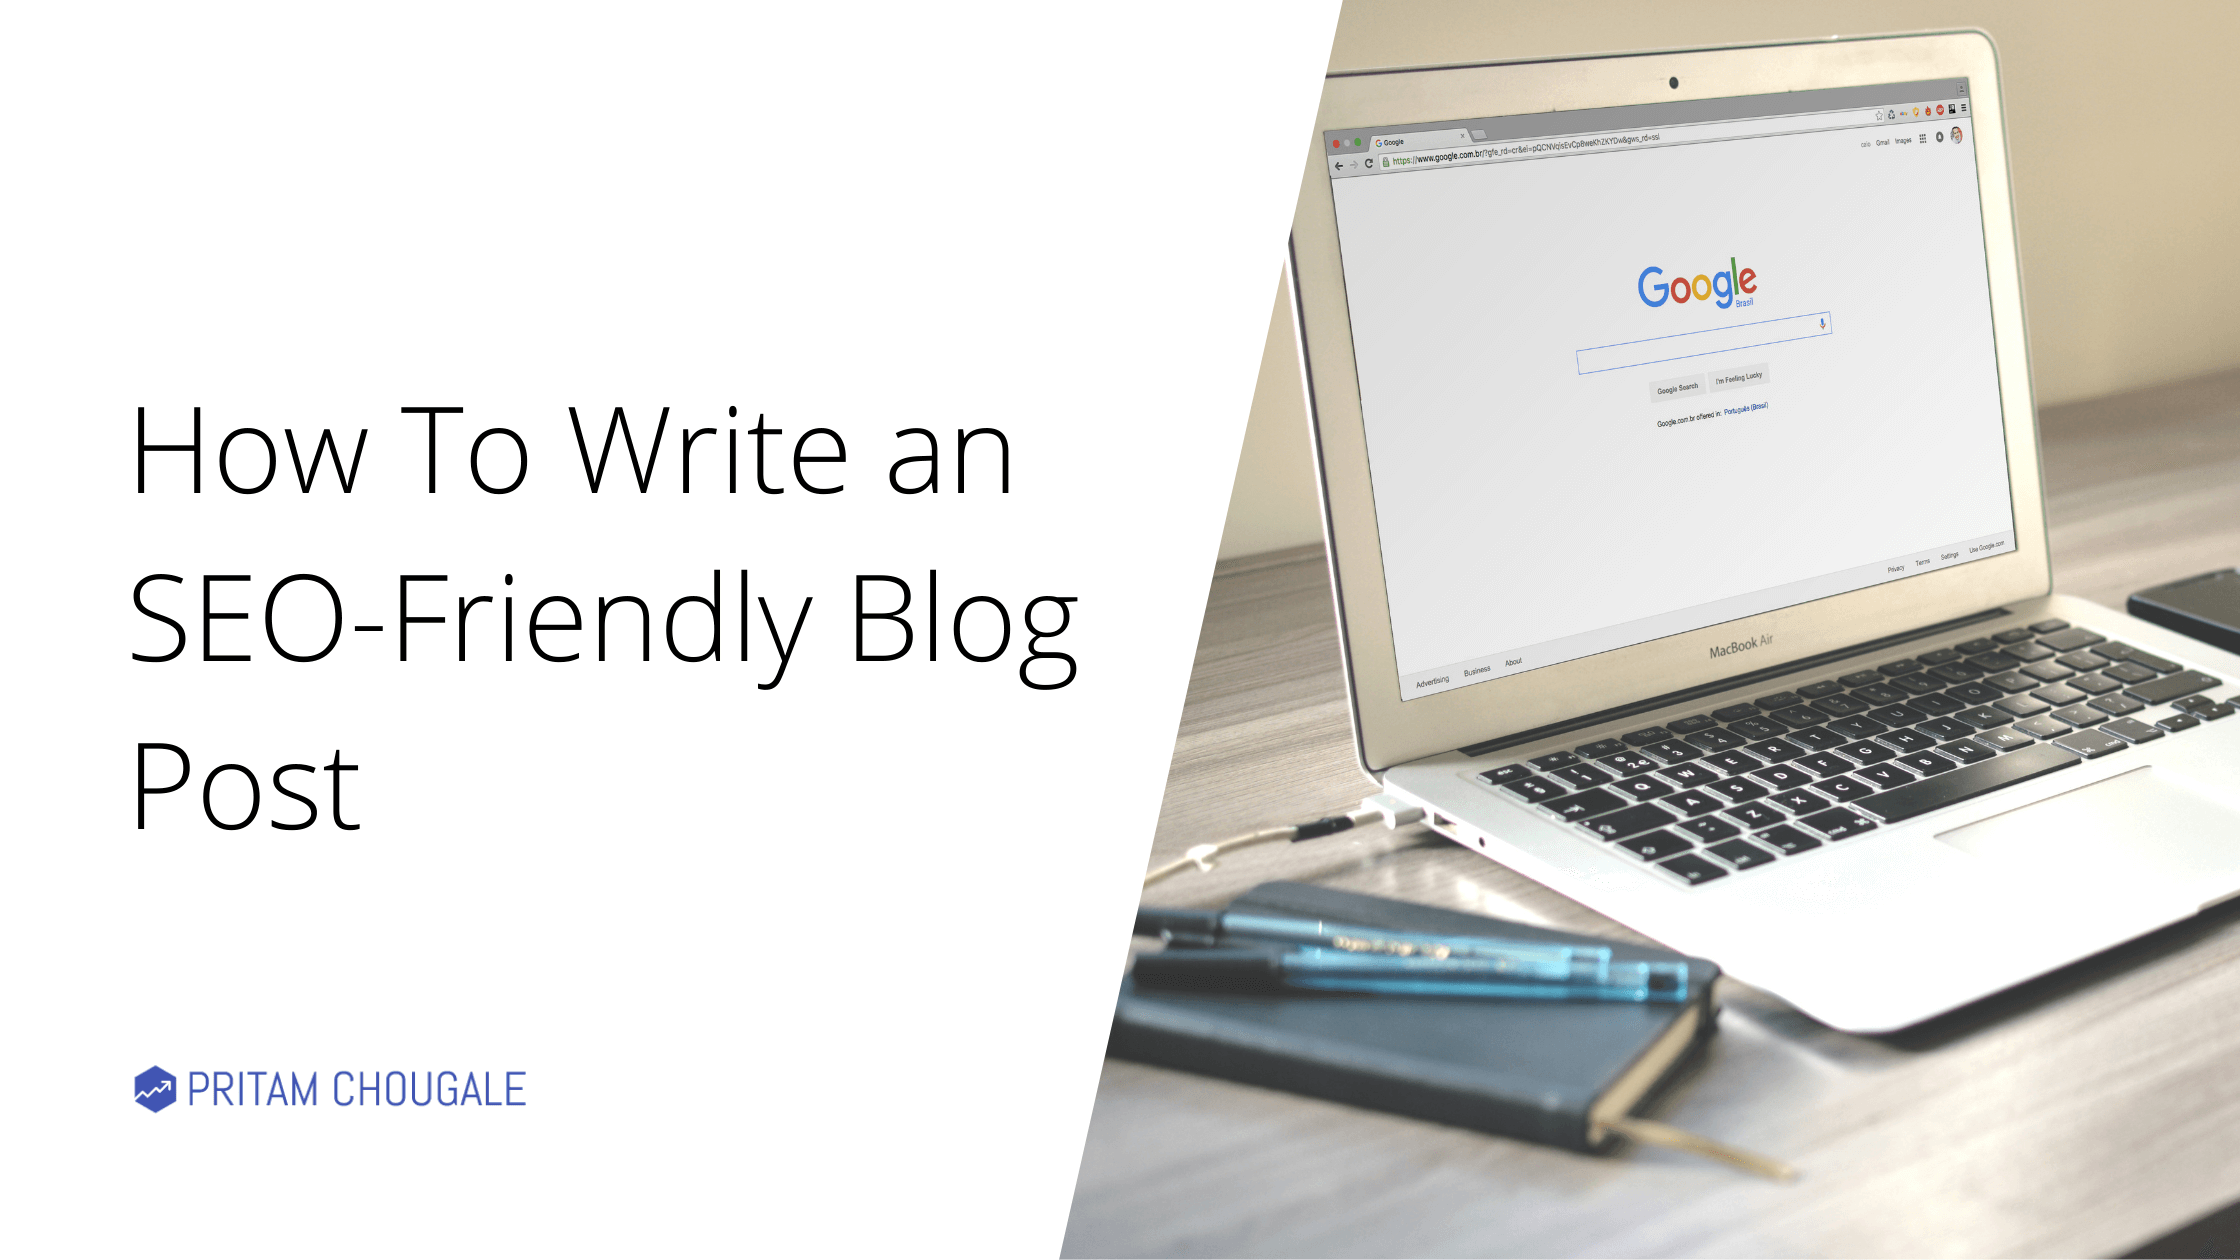 You are currently viewing How To Write an SEO-Friendly Blog Post for a Small Business